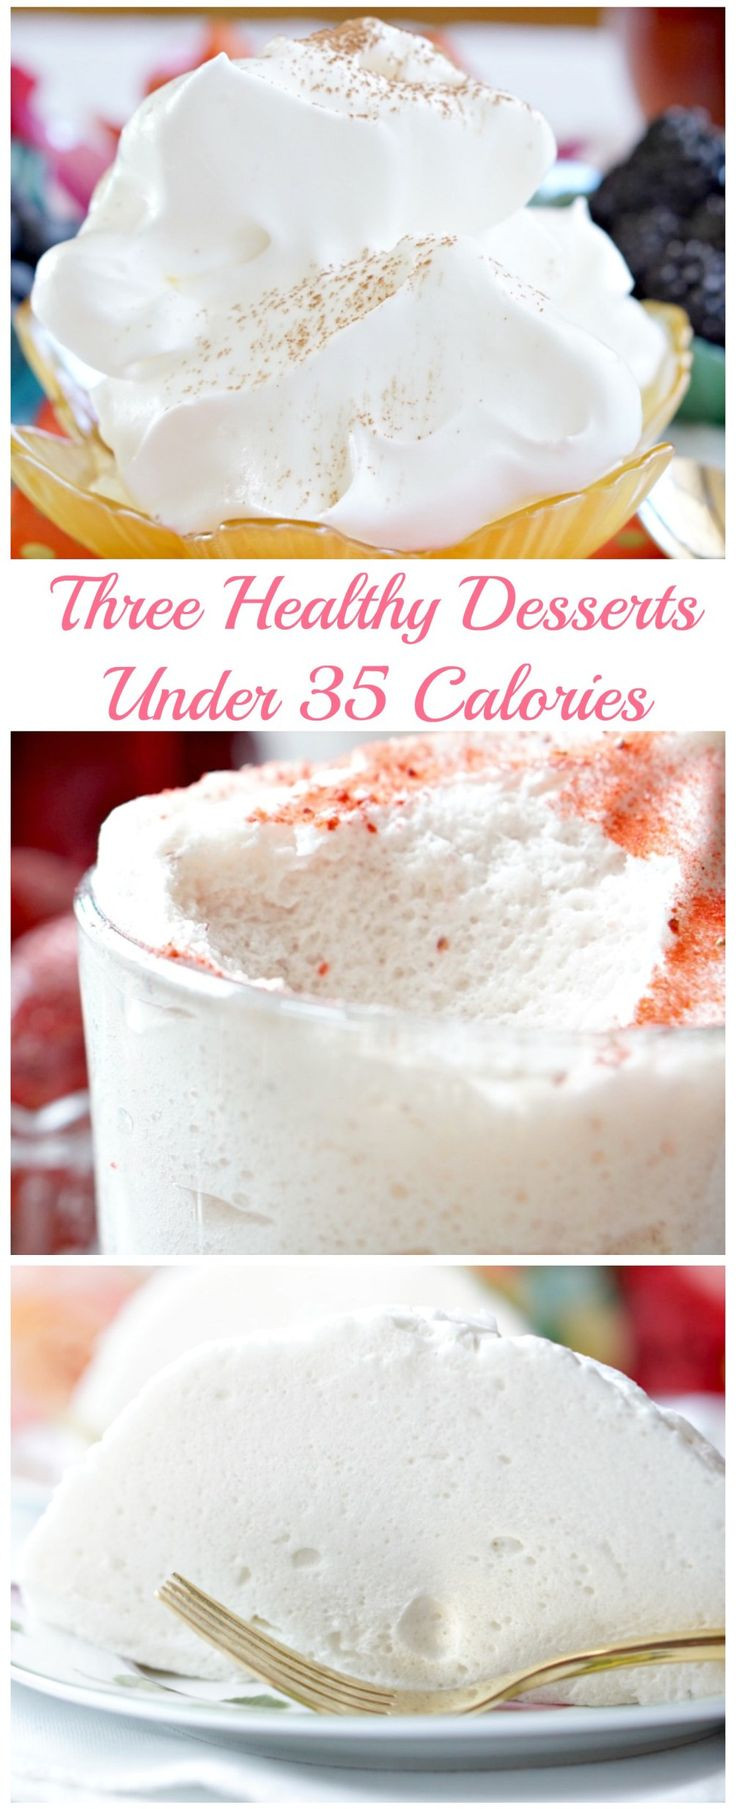 Low Calorie Christmas Desserts  Avoid Holiday Weight Gain